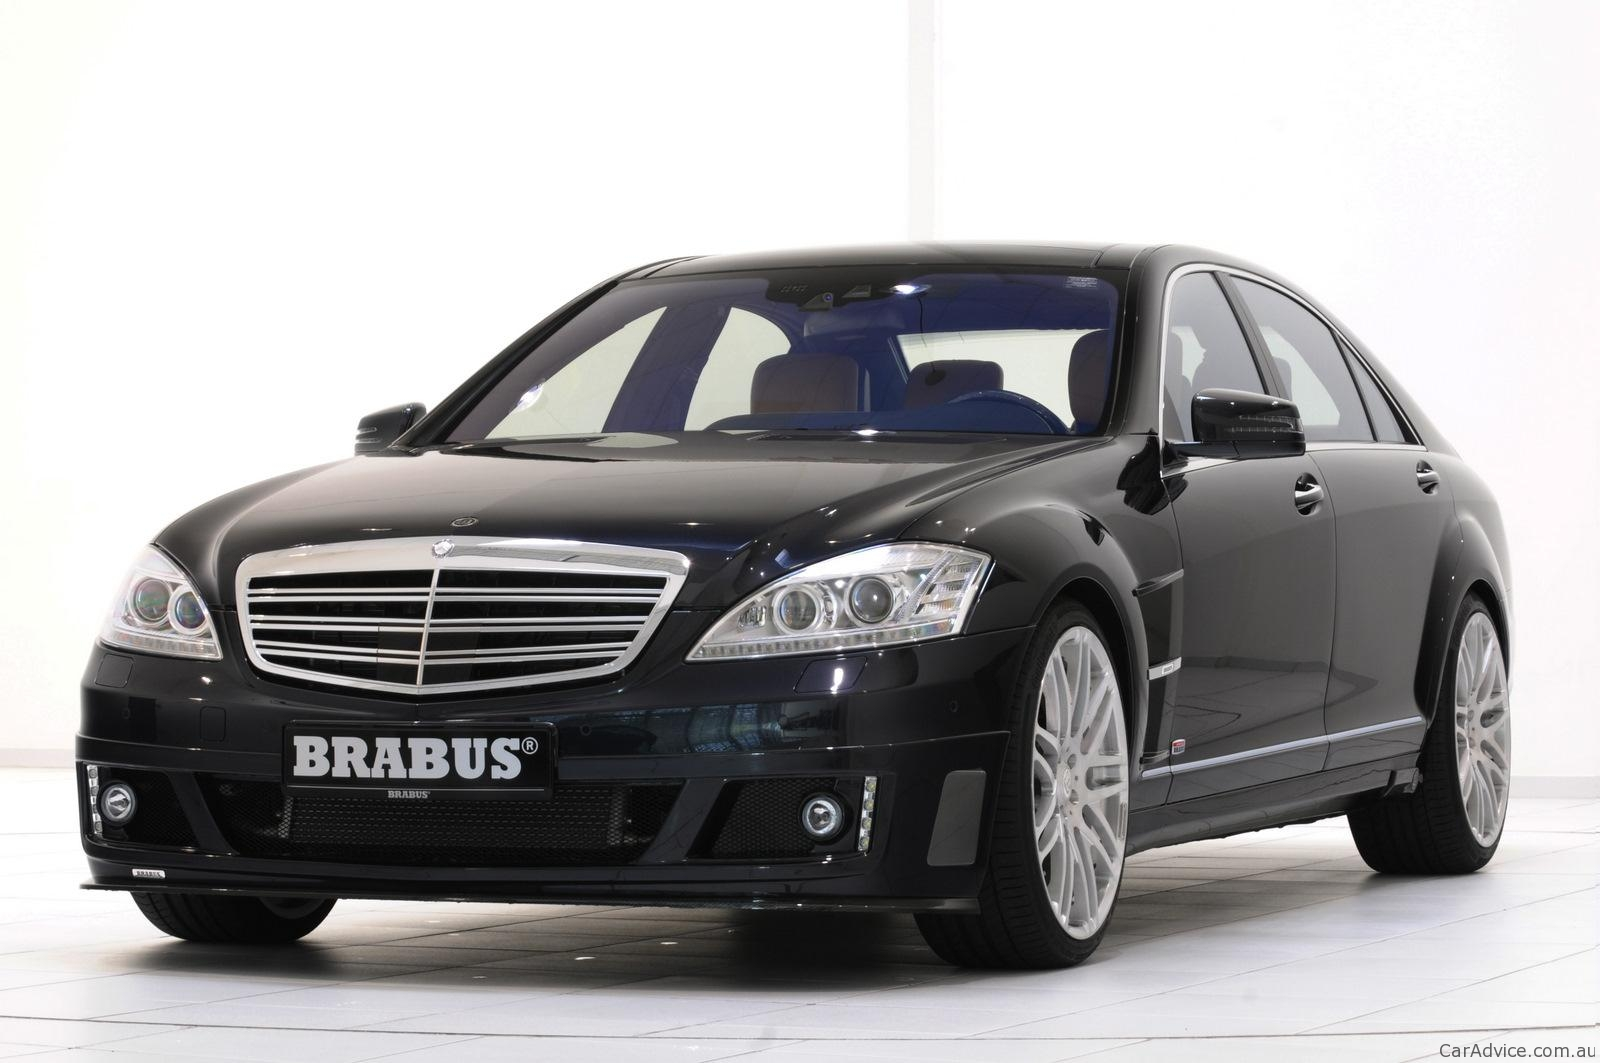 brabus sv12 r biturbo 800 mercedes benz s class photos 1 of 5. Black Bedroom Furniture Sets. Home Design Ideas